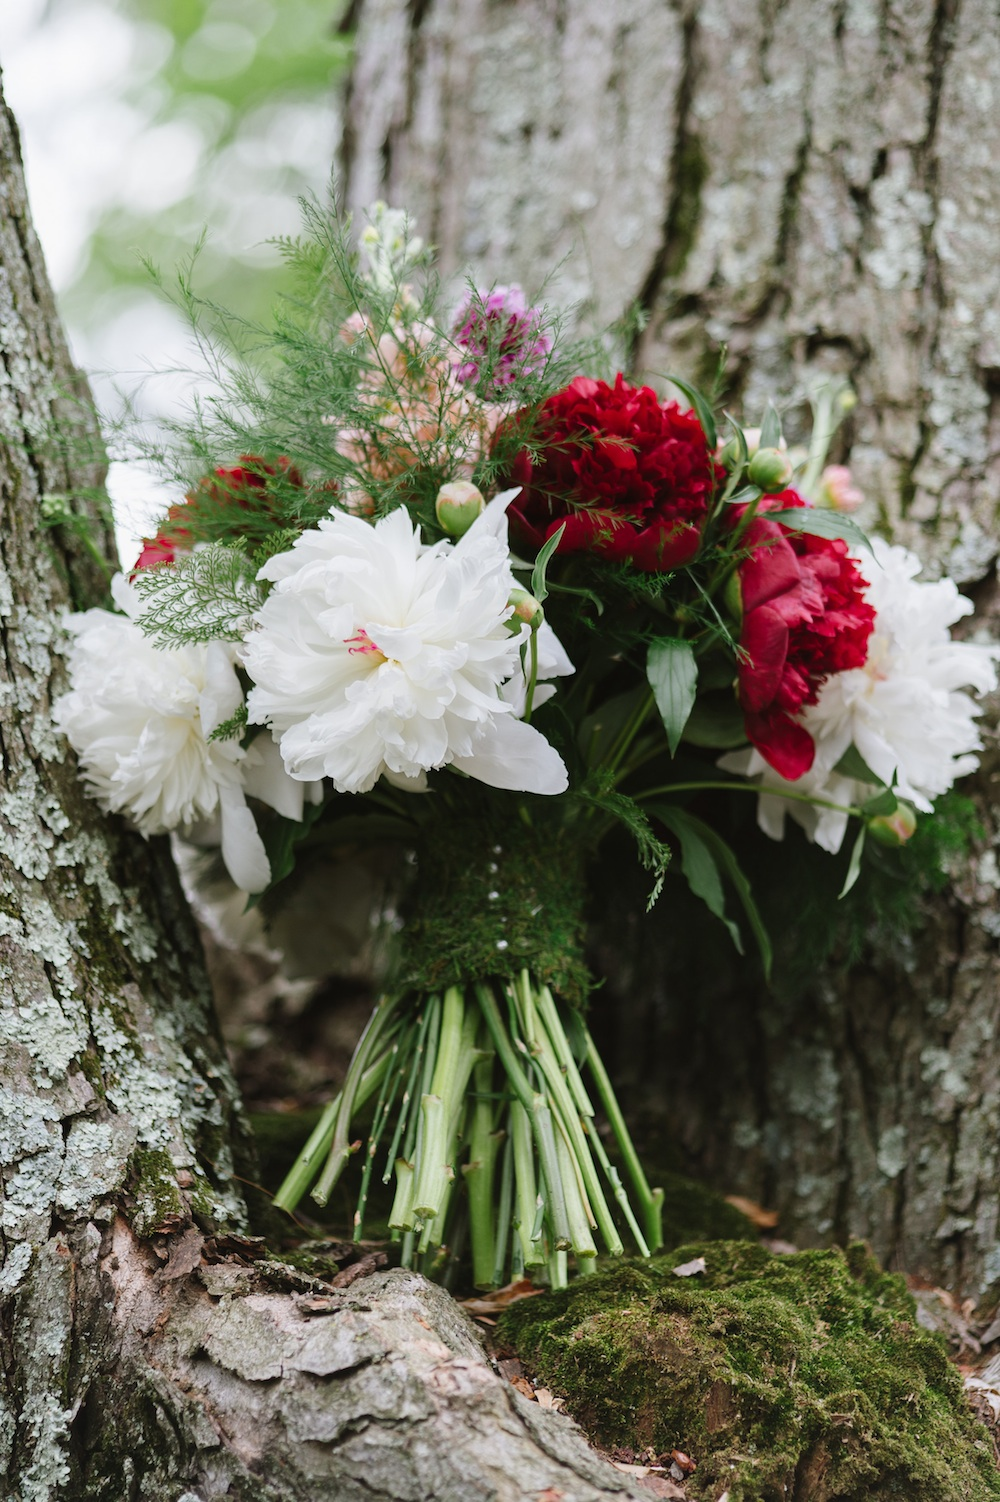 Woodland Inspired Wedding Bouquet with Moss Wrapped Stems / designed by EightTreeStreet / photo by Natalie Franke Photography